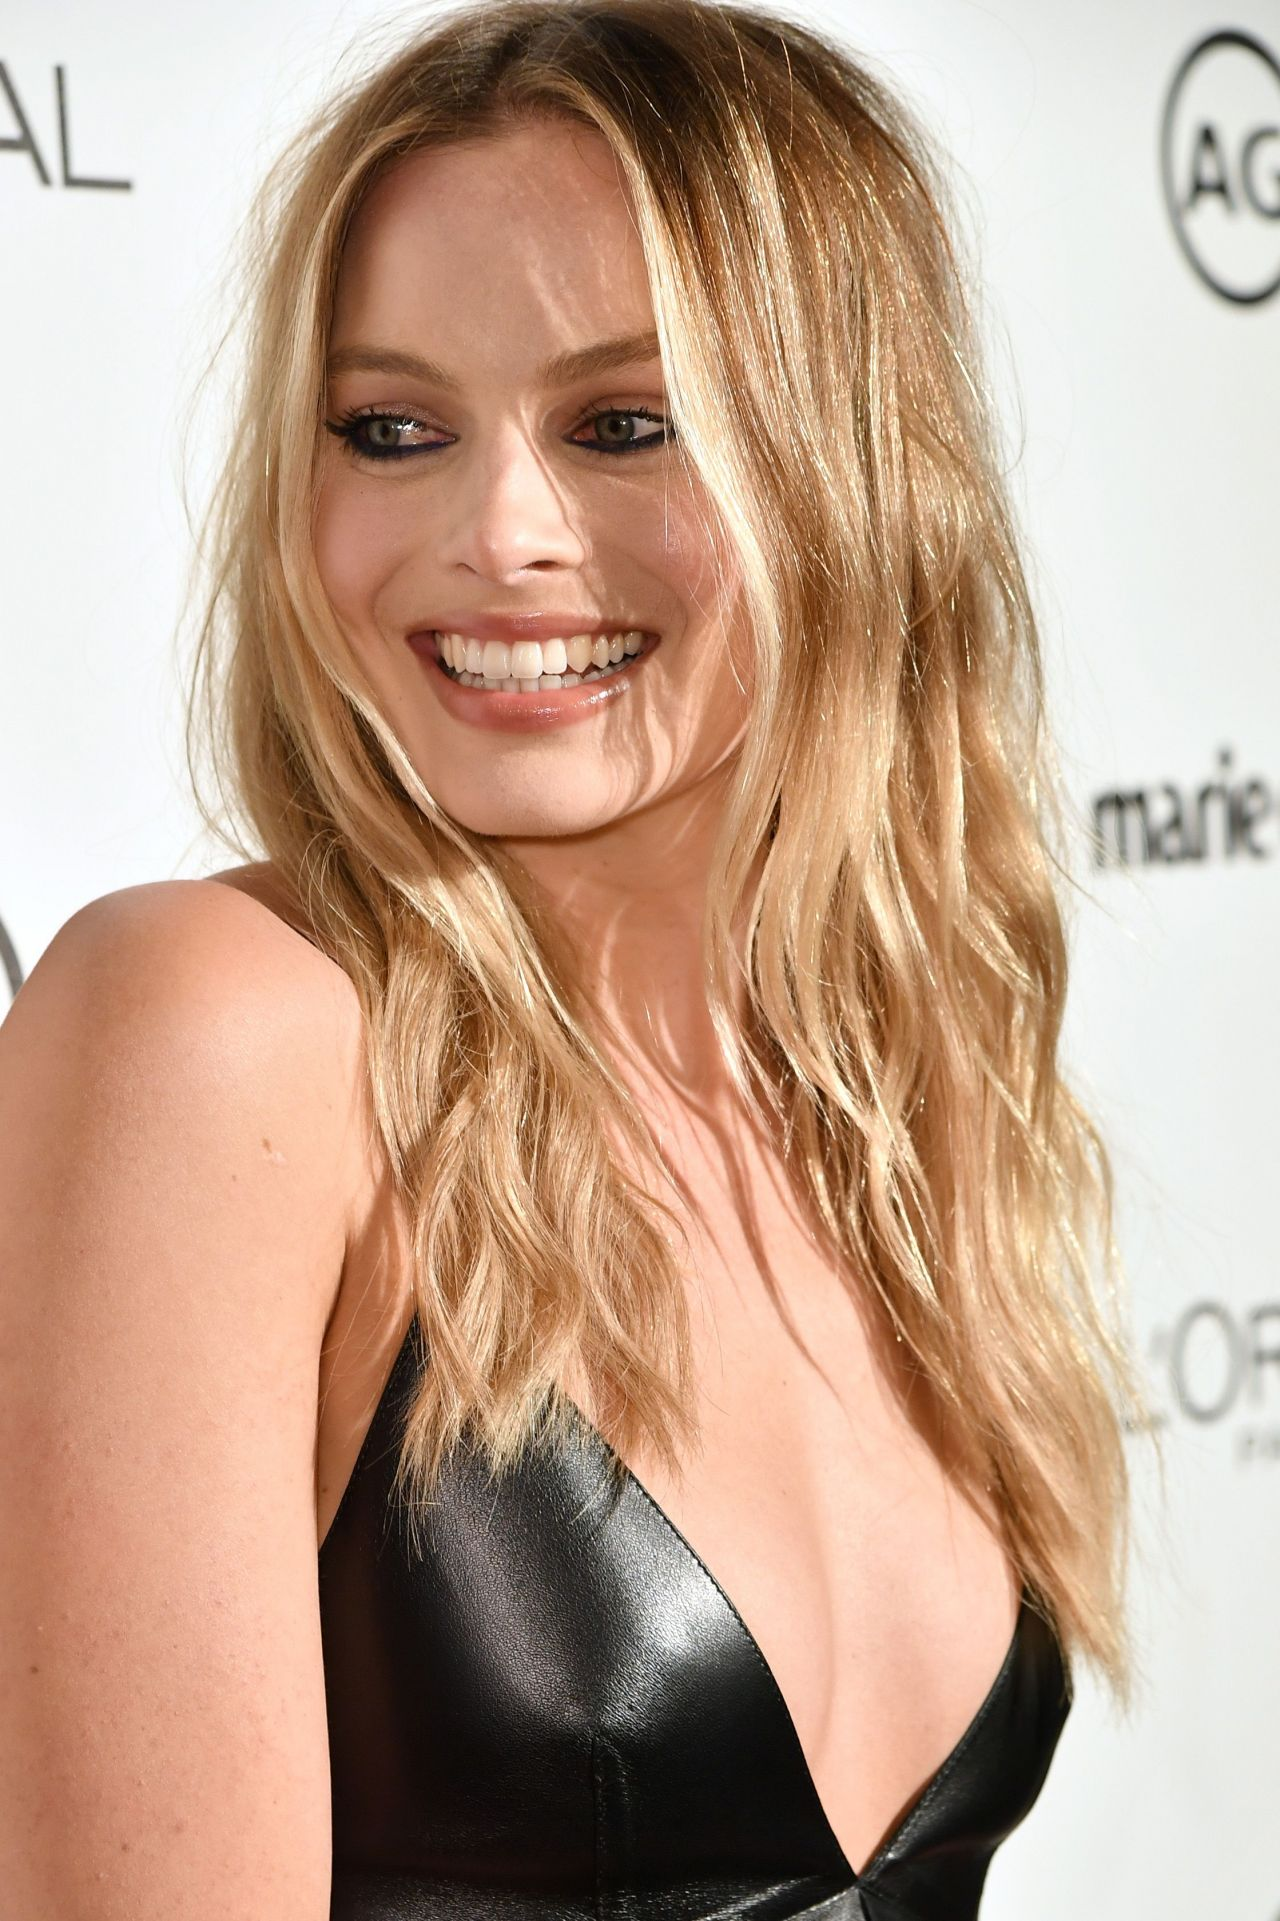 Margot Robbie Net Worth, Biography, Movies, Boyfriends, Pictures and Wallpapers 6